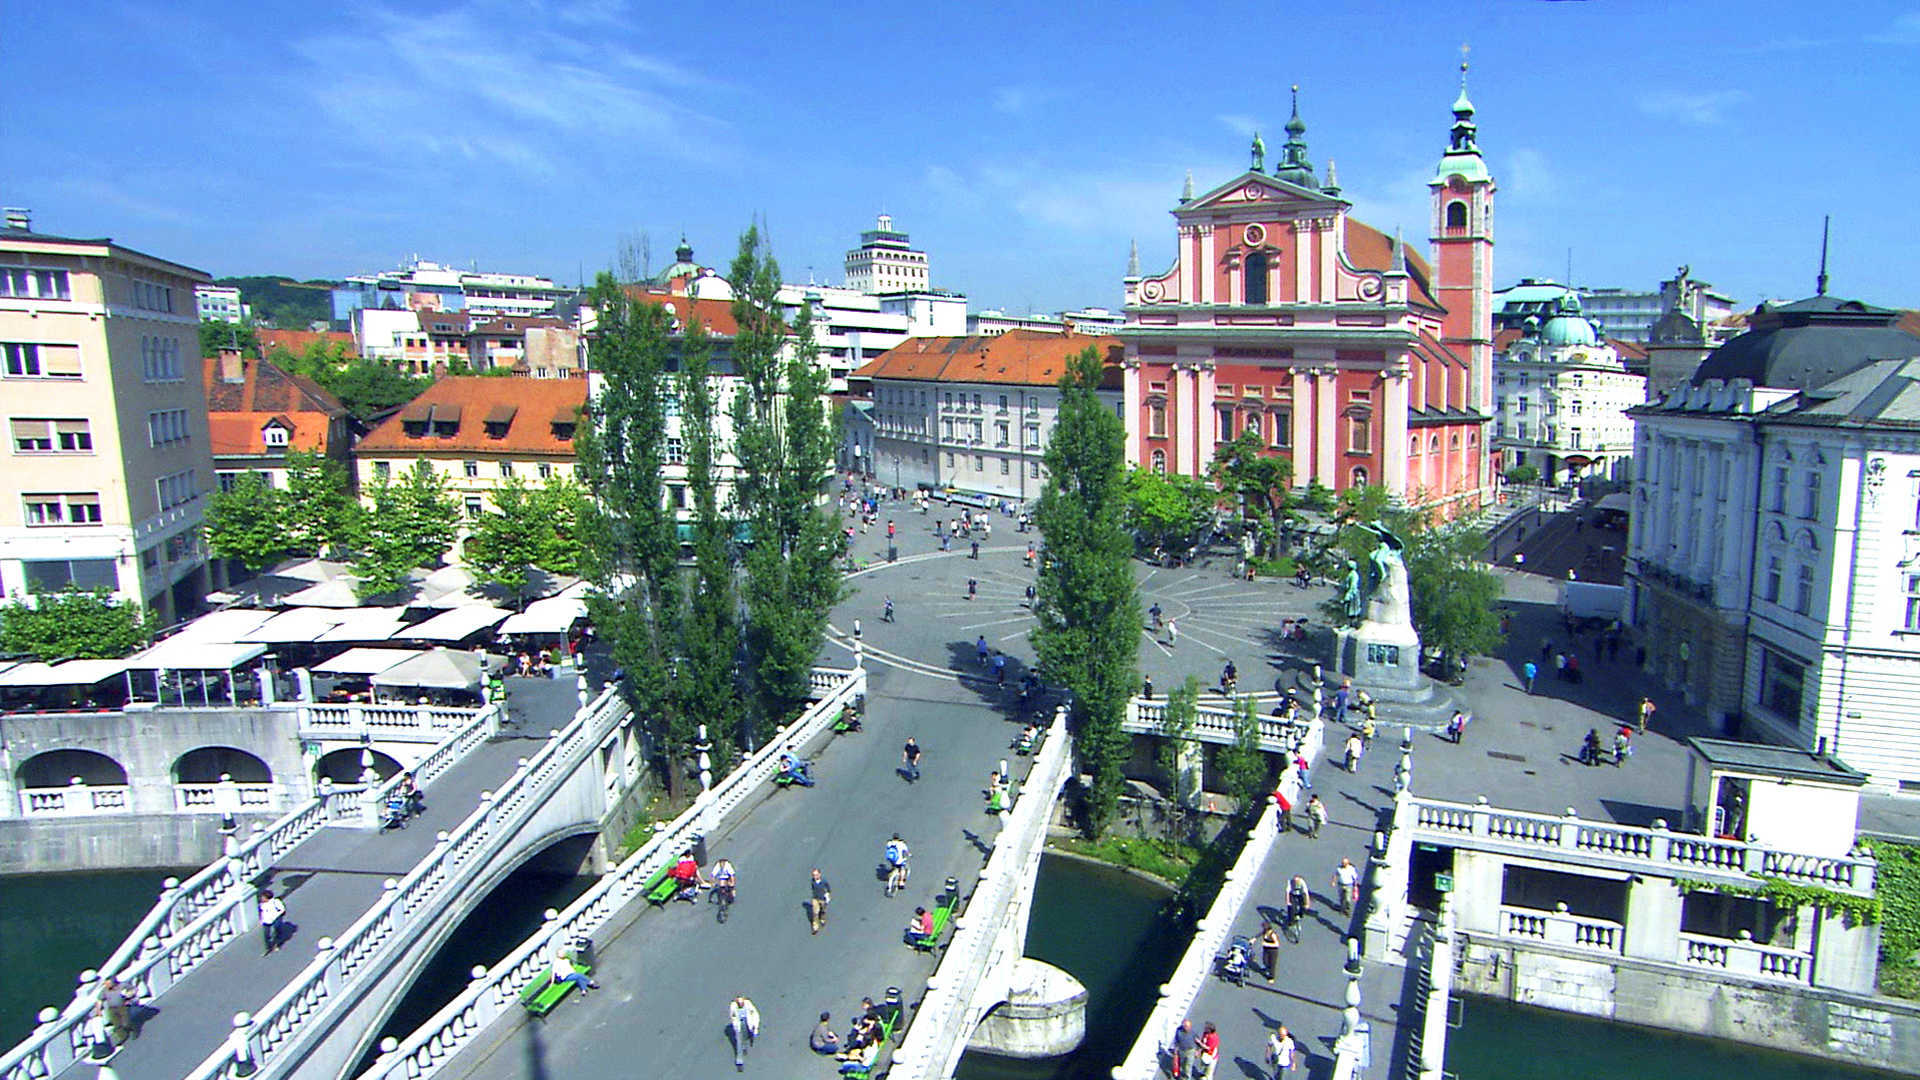 The Triple Bridge in Ljubljana, Slovenia